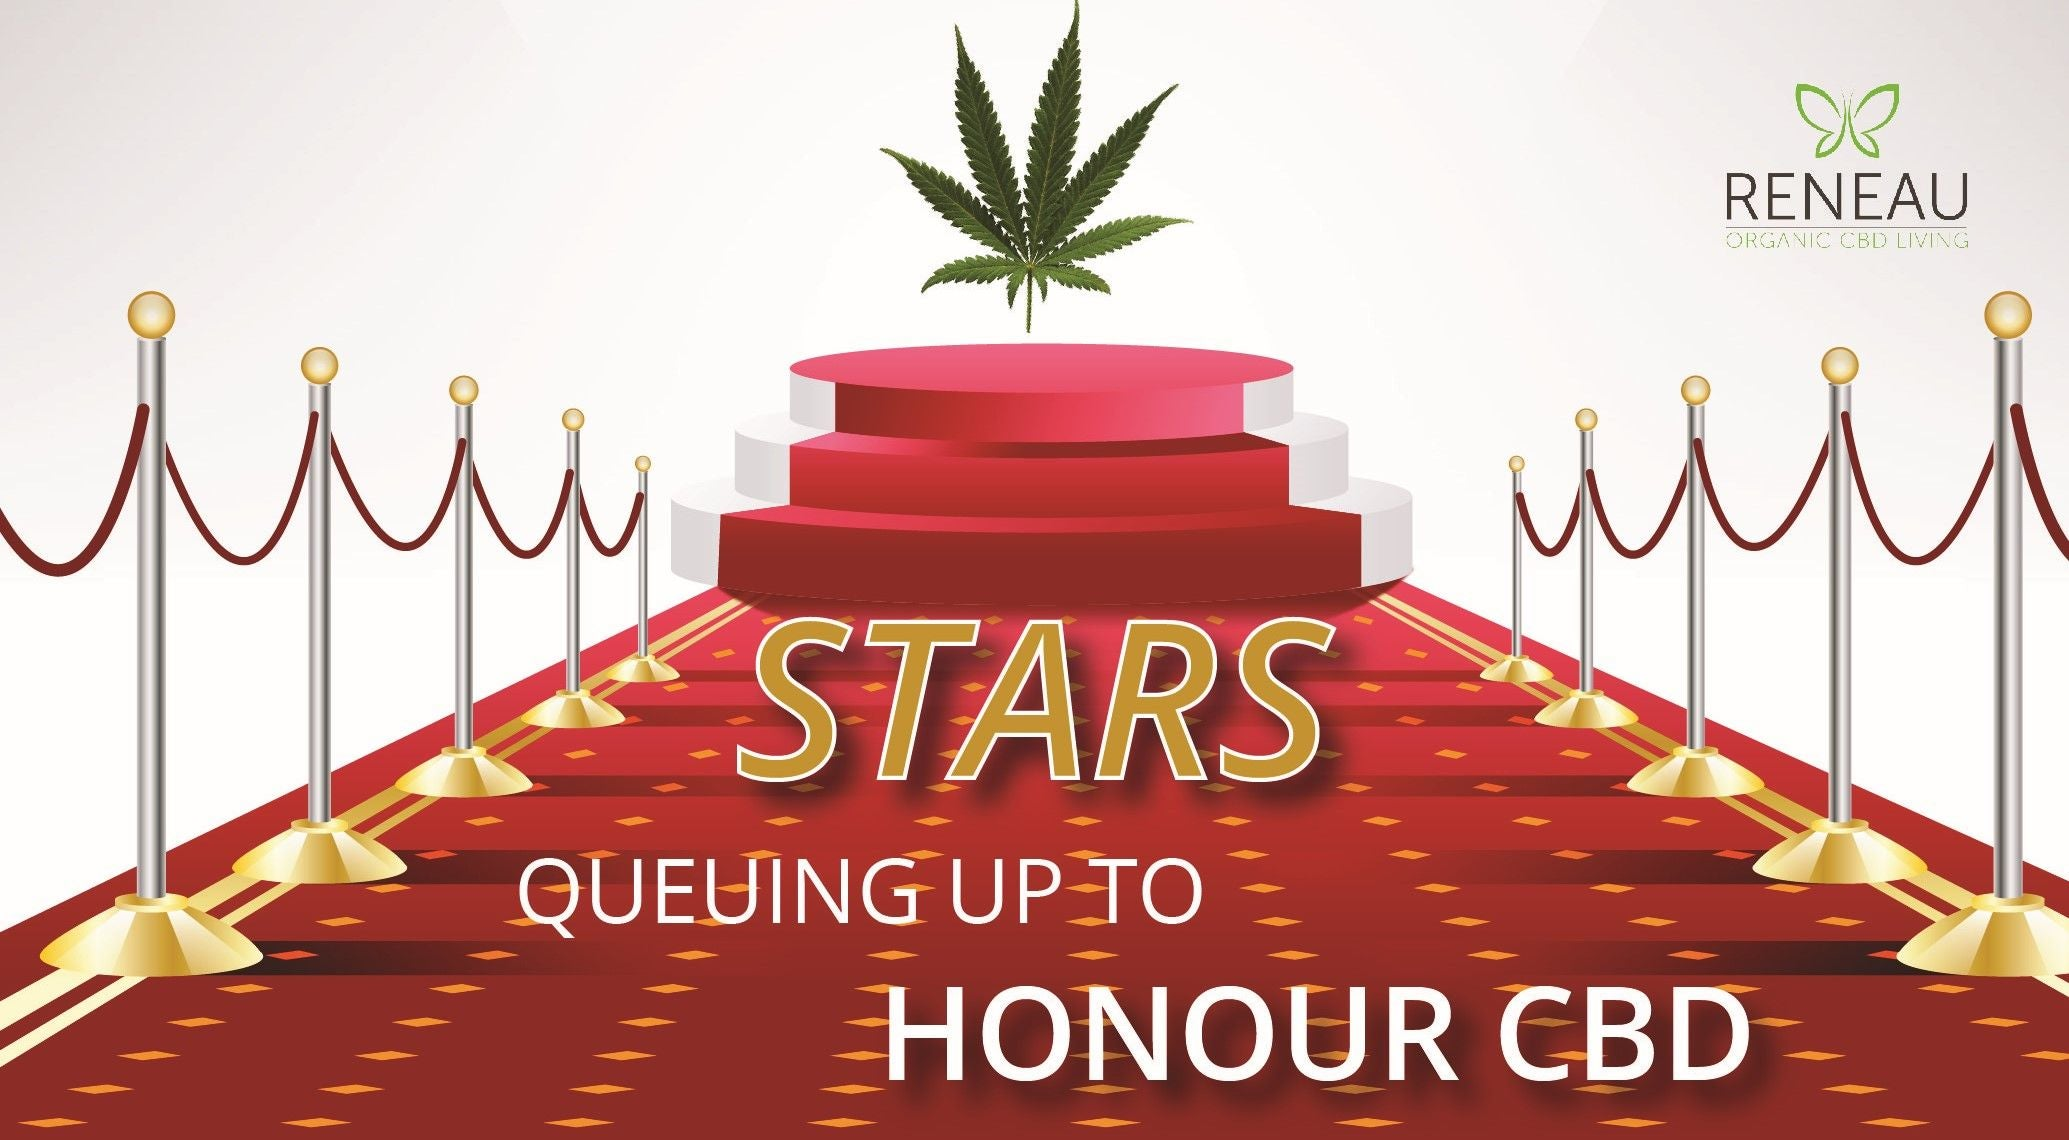 Celebrity Red carpet with cannabis leaf on stage and title_Stars queuing up to honour CBD Oil | Reneau Organic CBD Living | Natural Organic Pure Clean CBD Oils